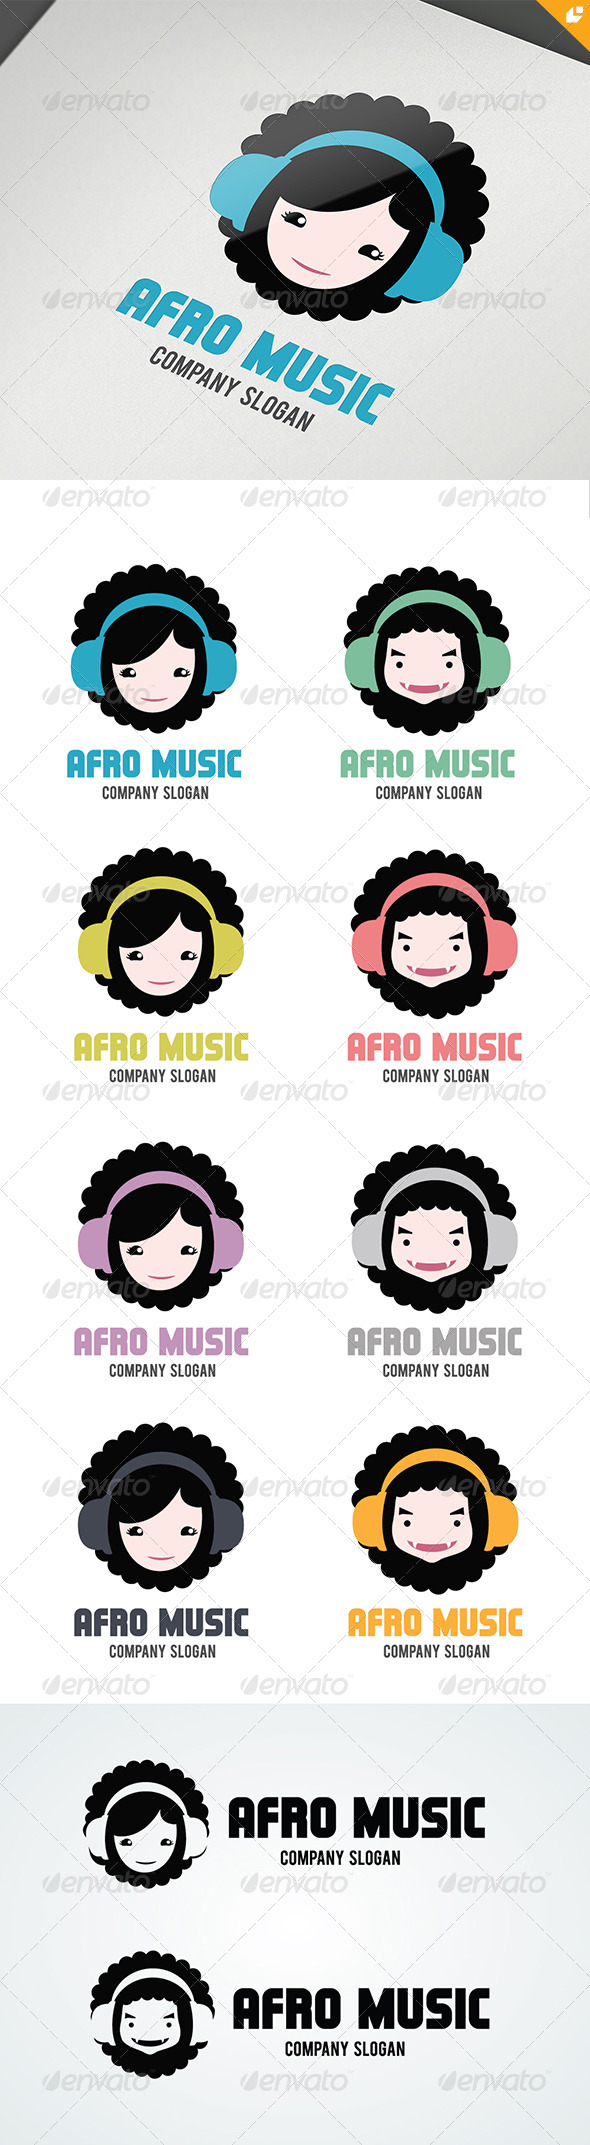 Afro Music Logo - Vector Abstract